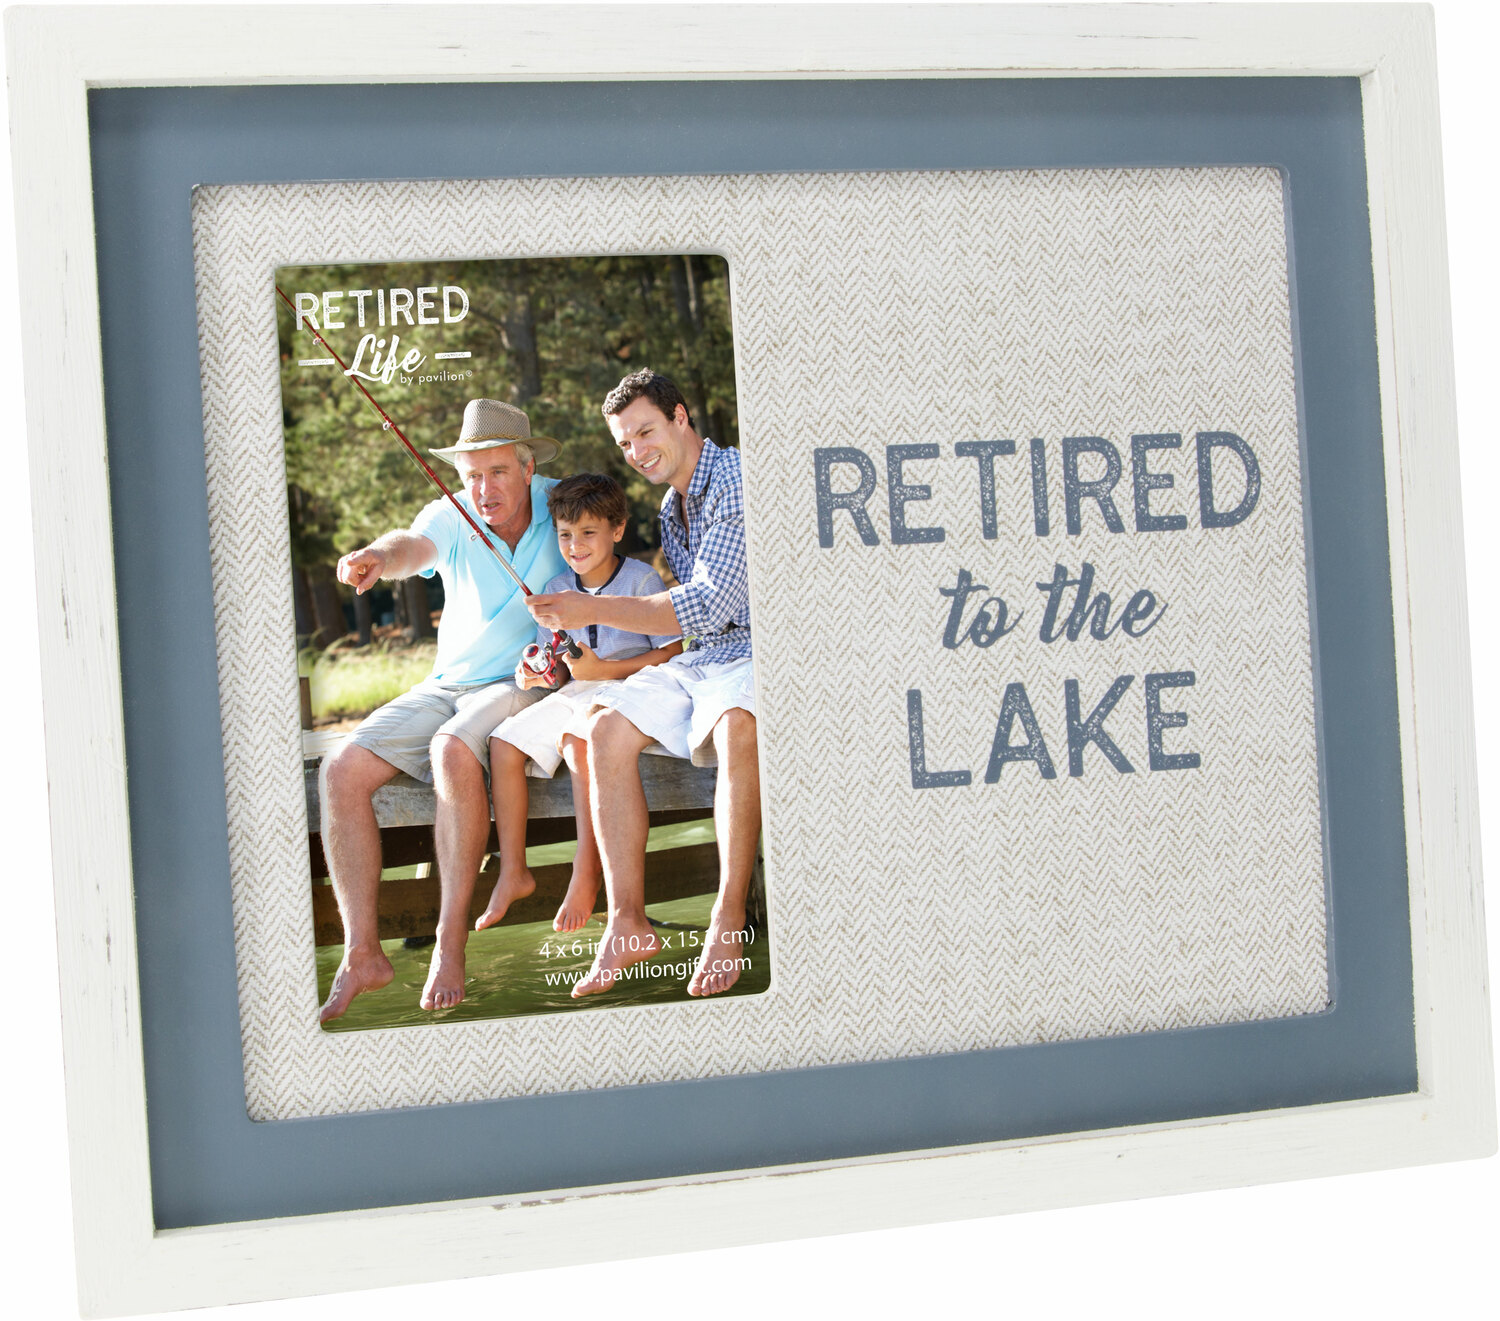 "Lake by Retired Life - Lake - 9.75"" x 8.25"" Frame (Holds 4"" x 6"" Photo)"